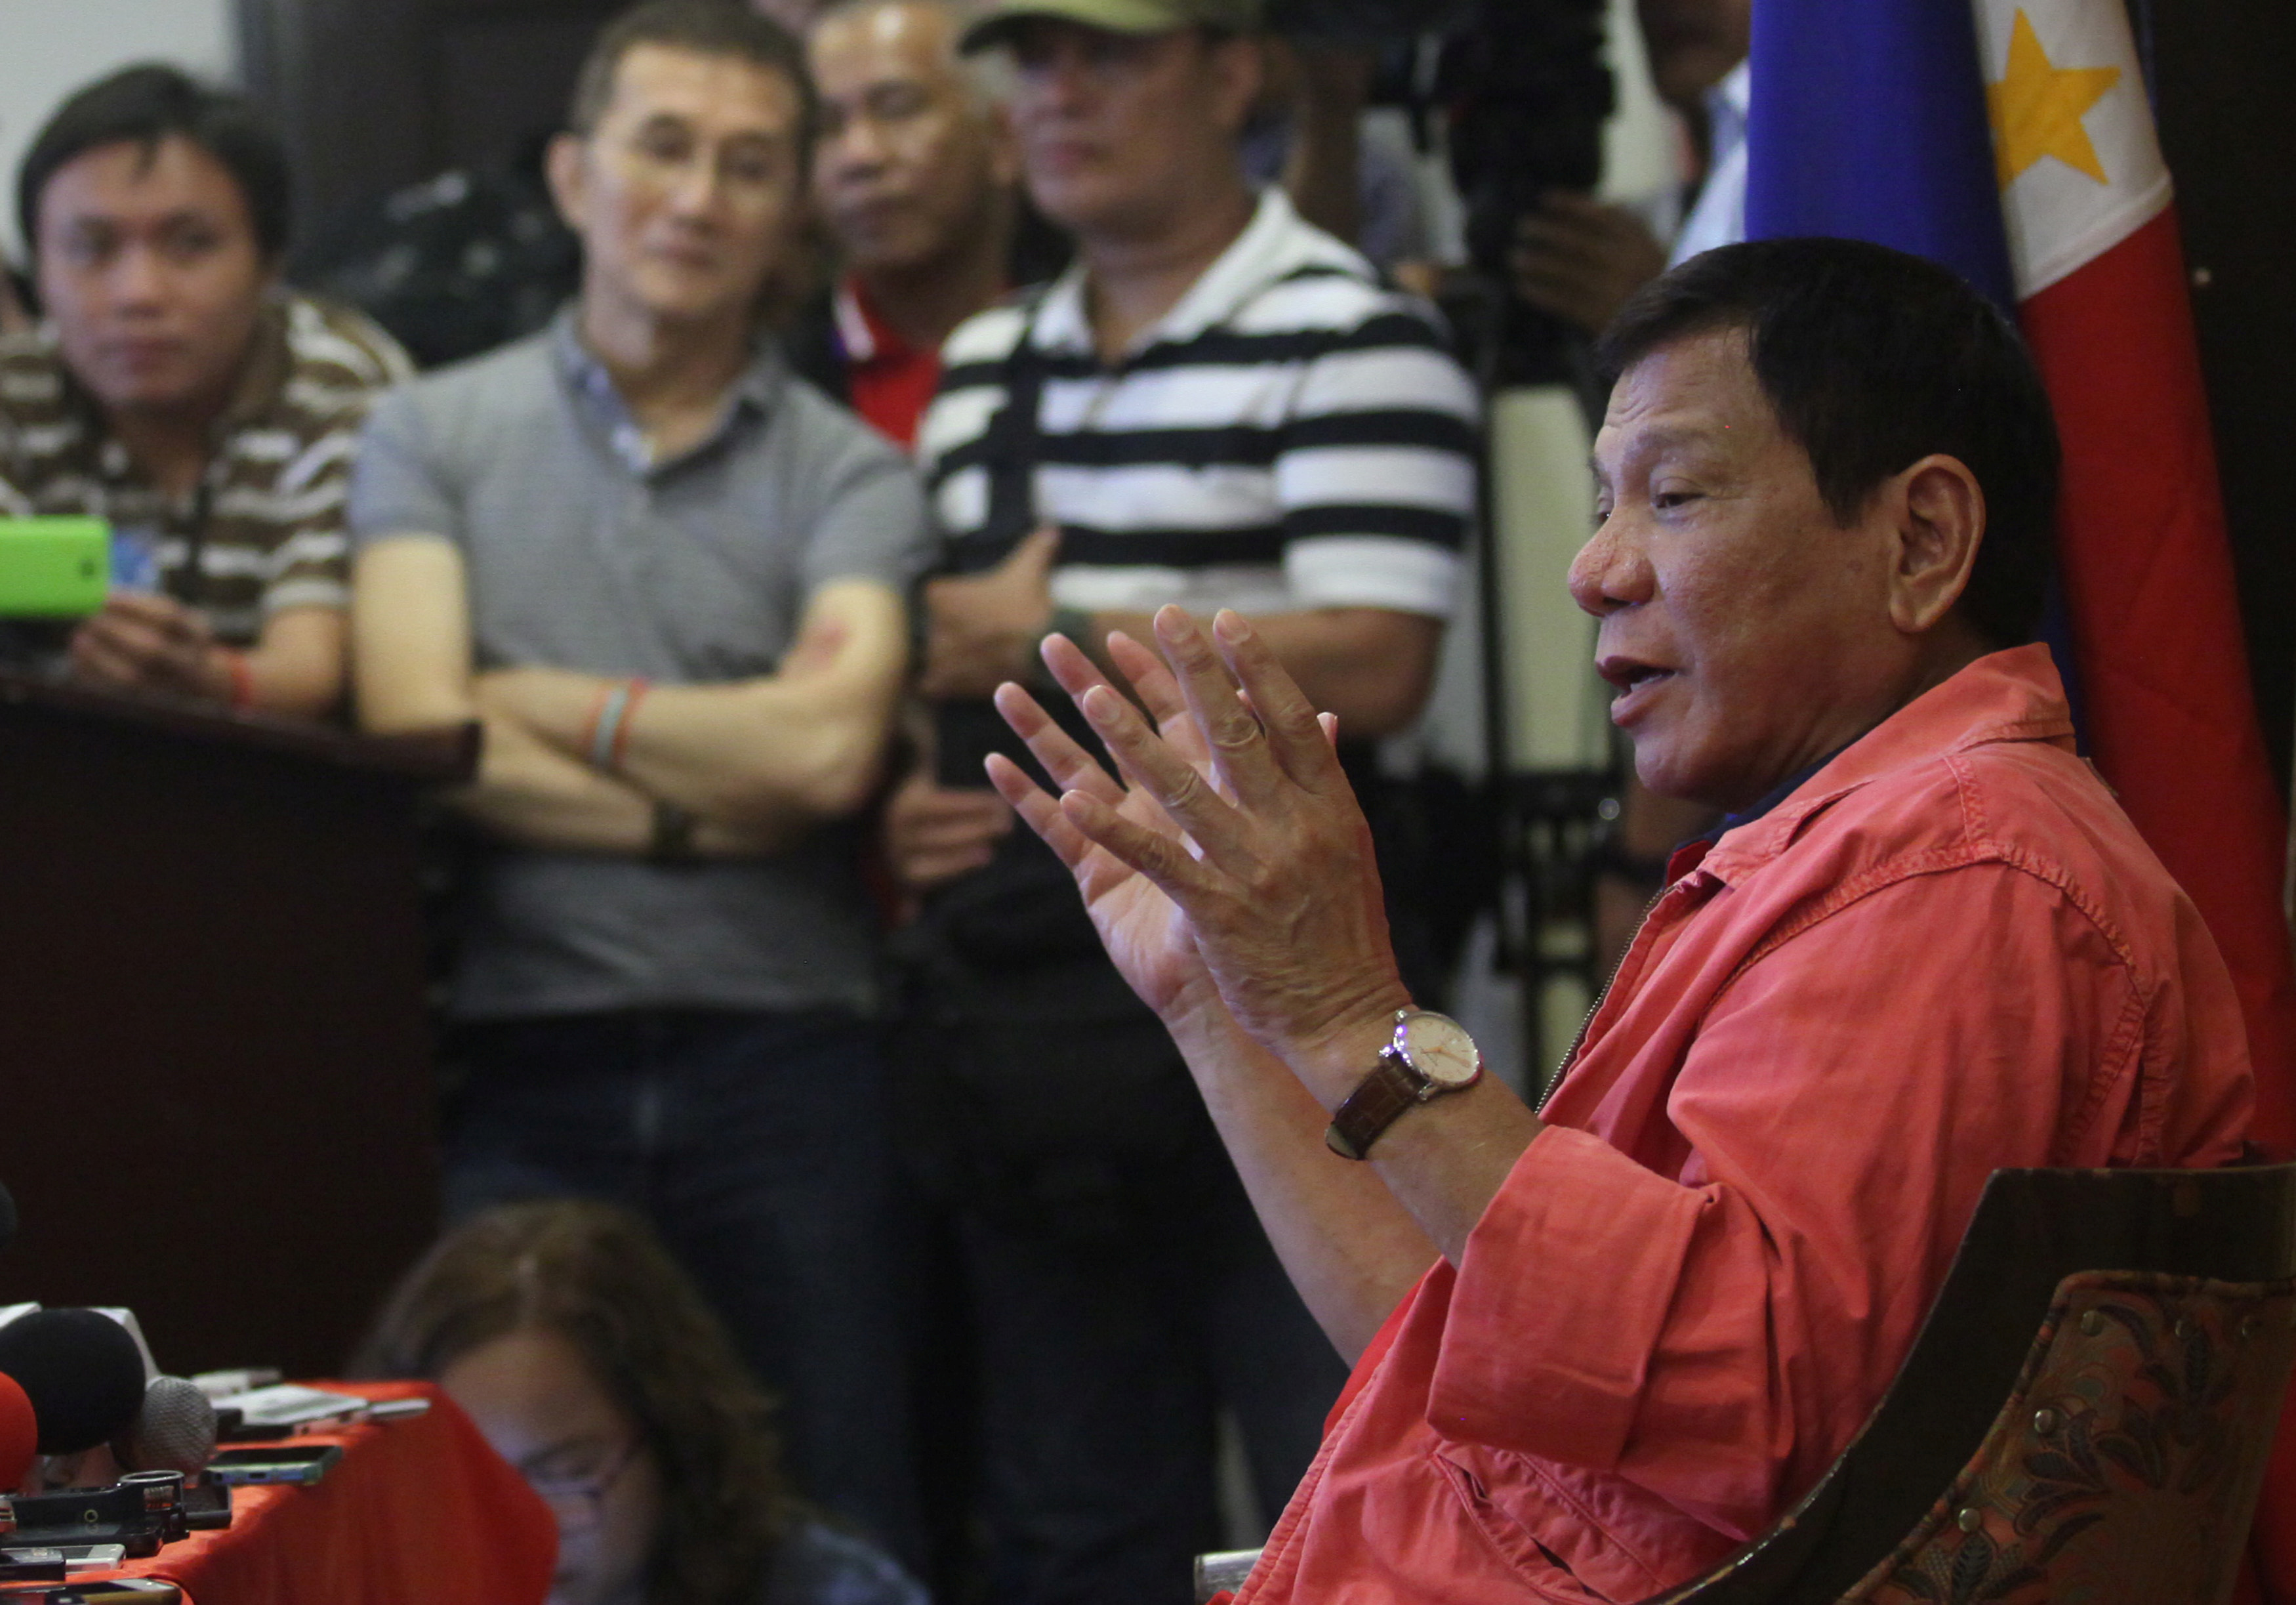 Philippine President-elect Rodrigo Duterte during a news conference at a hotel in Davao City, in southern Philippines, on May 26, 2016